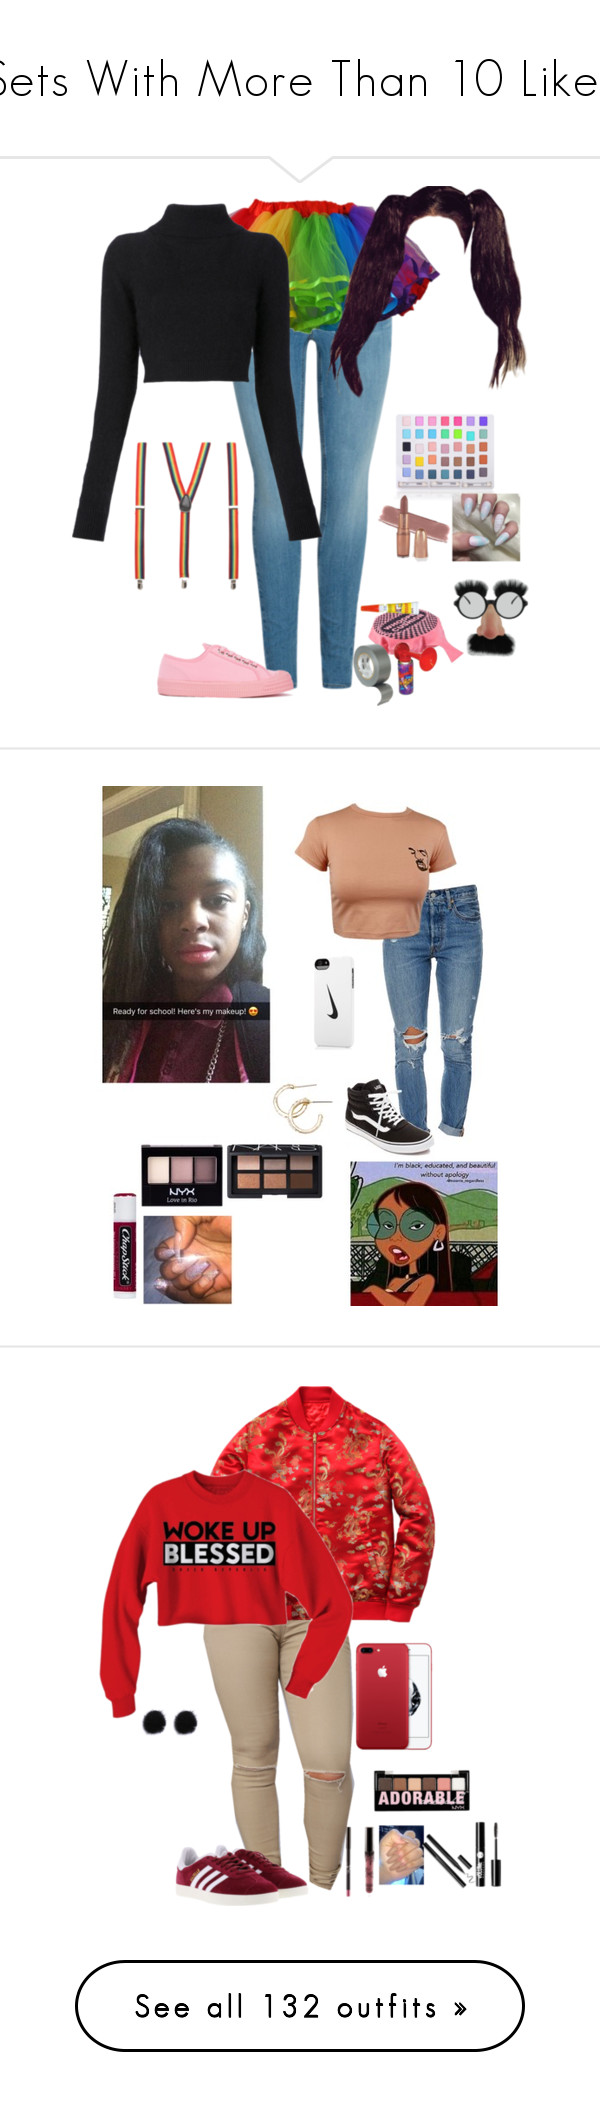 """""""Sets With More Than 10 Likes"""" by nobledynasti ❤ liked on Polyvore featuring Balmain, Novesta, Shany, Levi's, Vans, Chapstick, NYX, NARS Cosmetics, GET LOST and NIKE"""